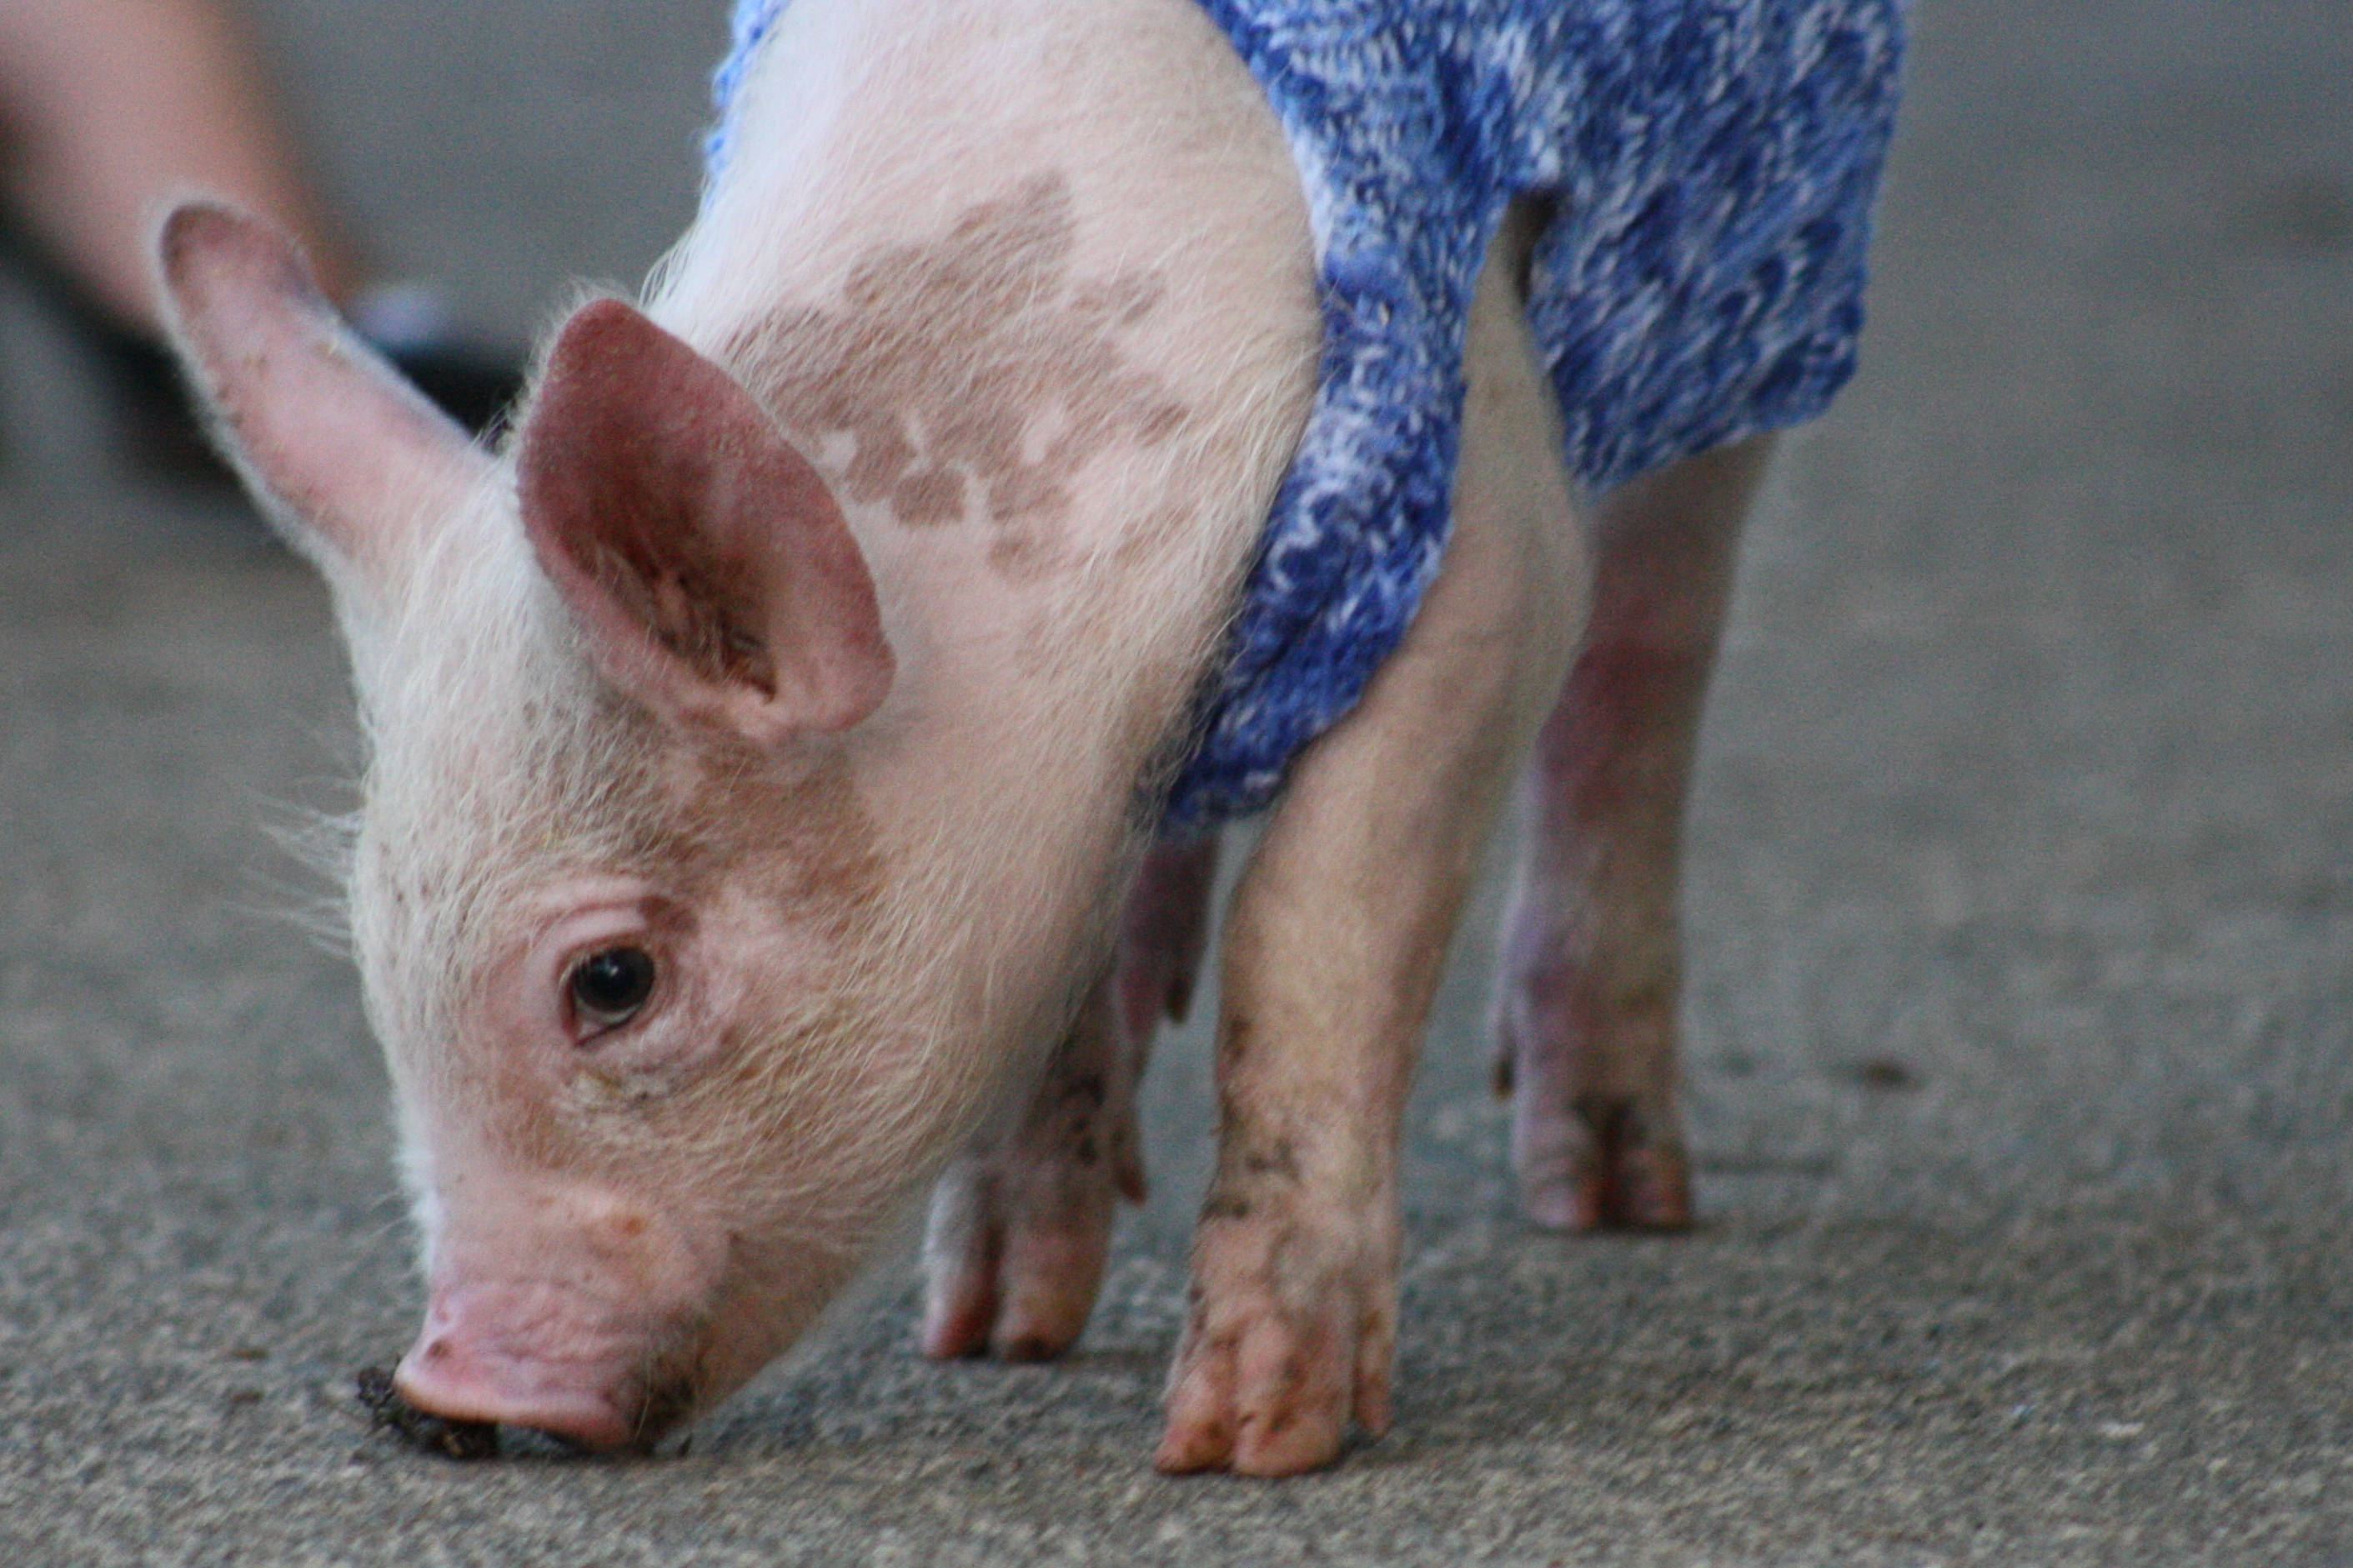 Gemma, a piglet cared for at home and at the SPCA base